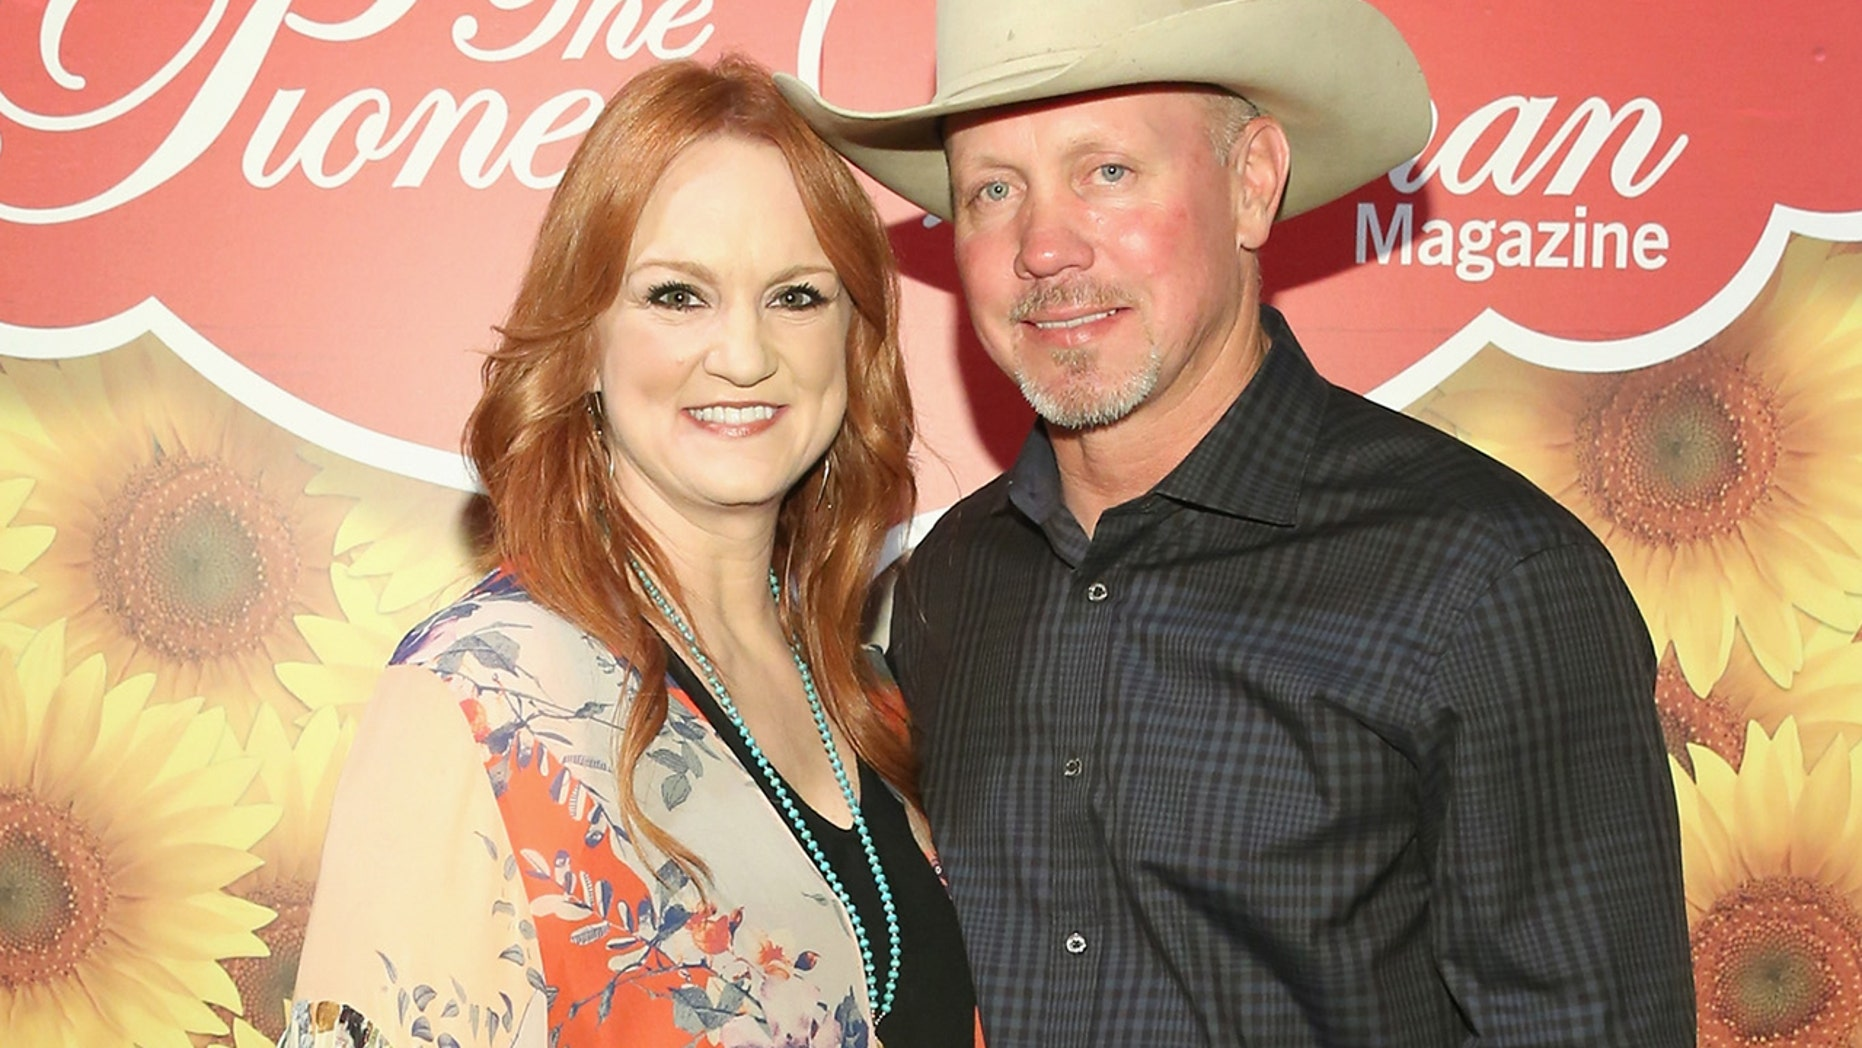 Ree Drummond (L) and Ladd Drummond pose for a photo during The Pioneer Woman Magazine Celebration with Ree Drummond at The Mason Jar on June 6, 2017 in New York City.